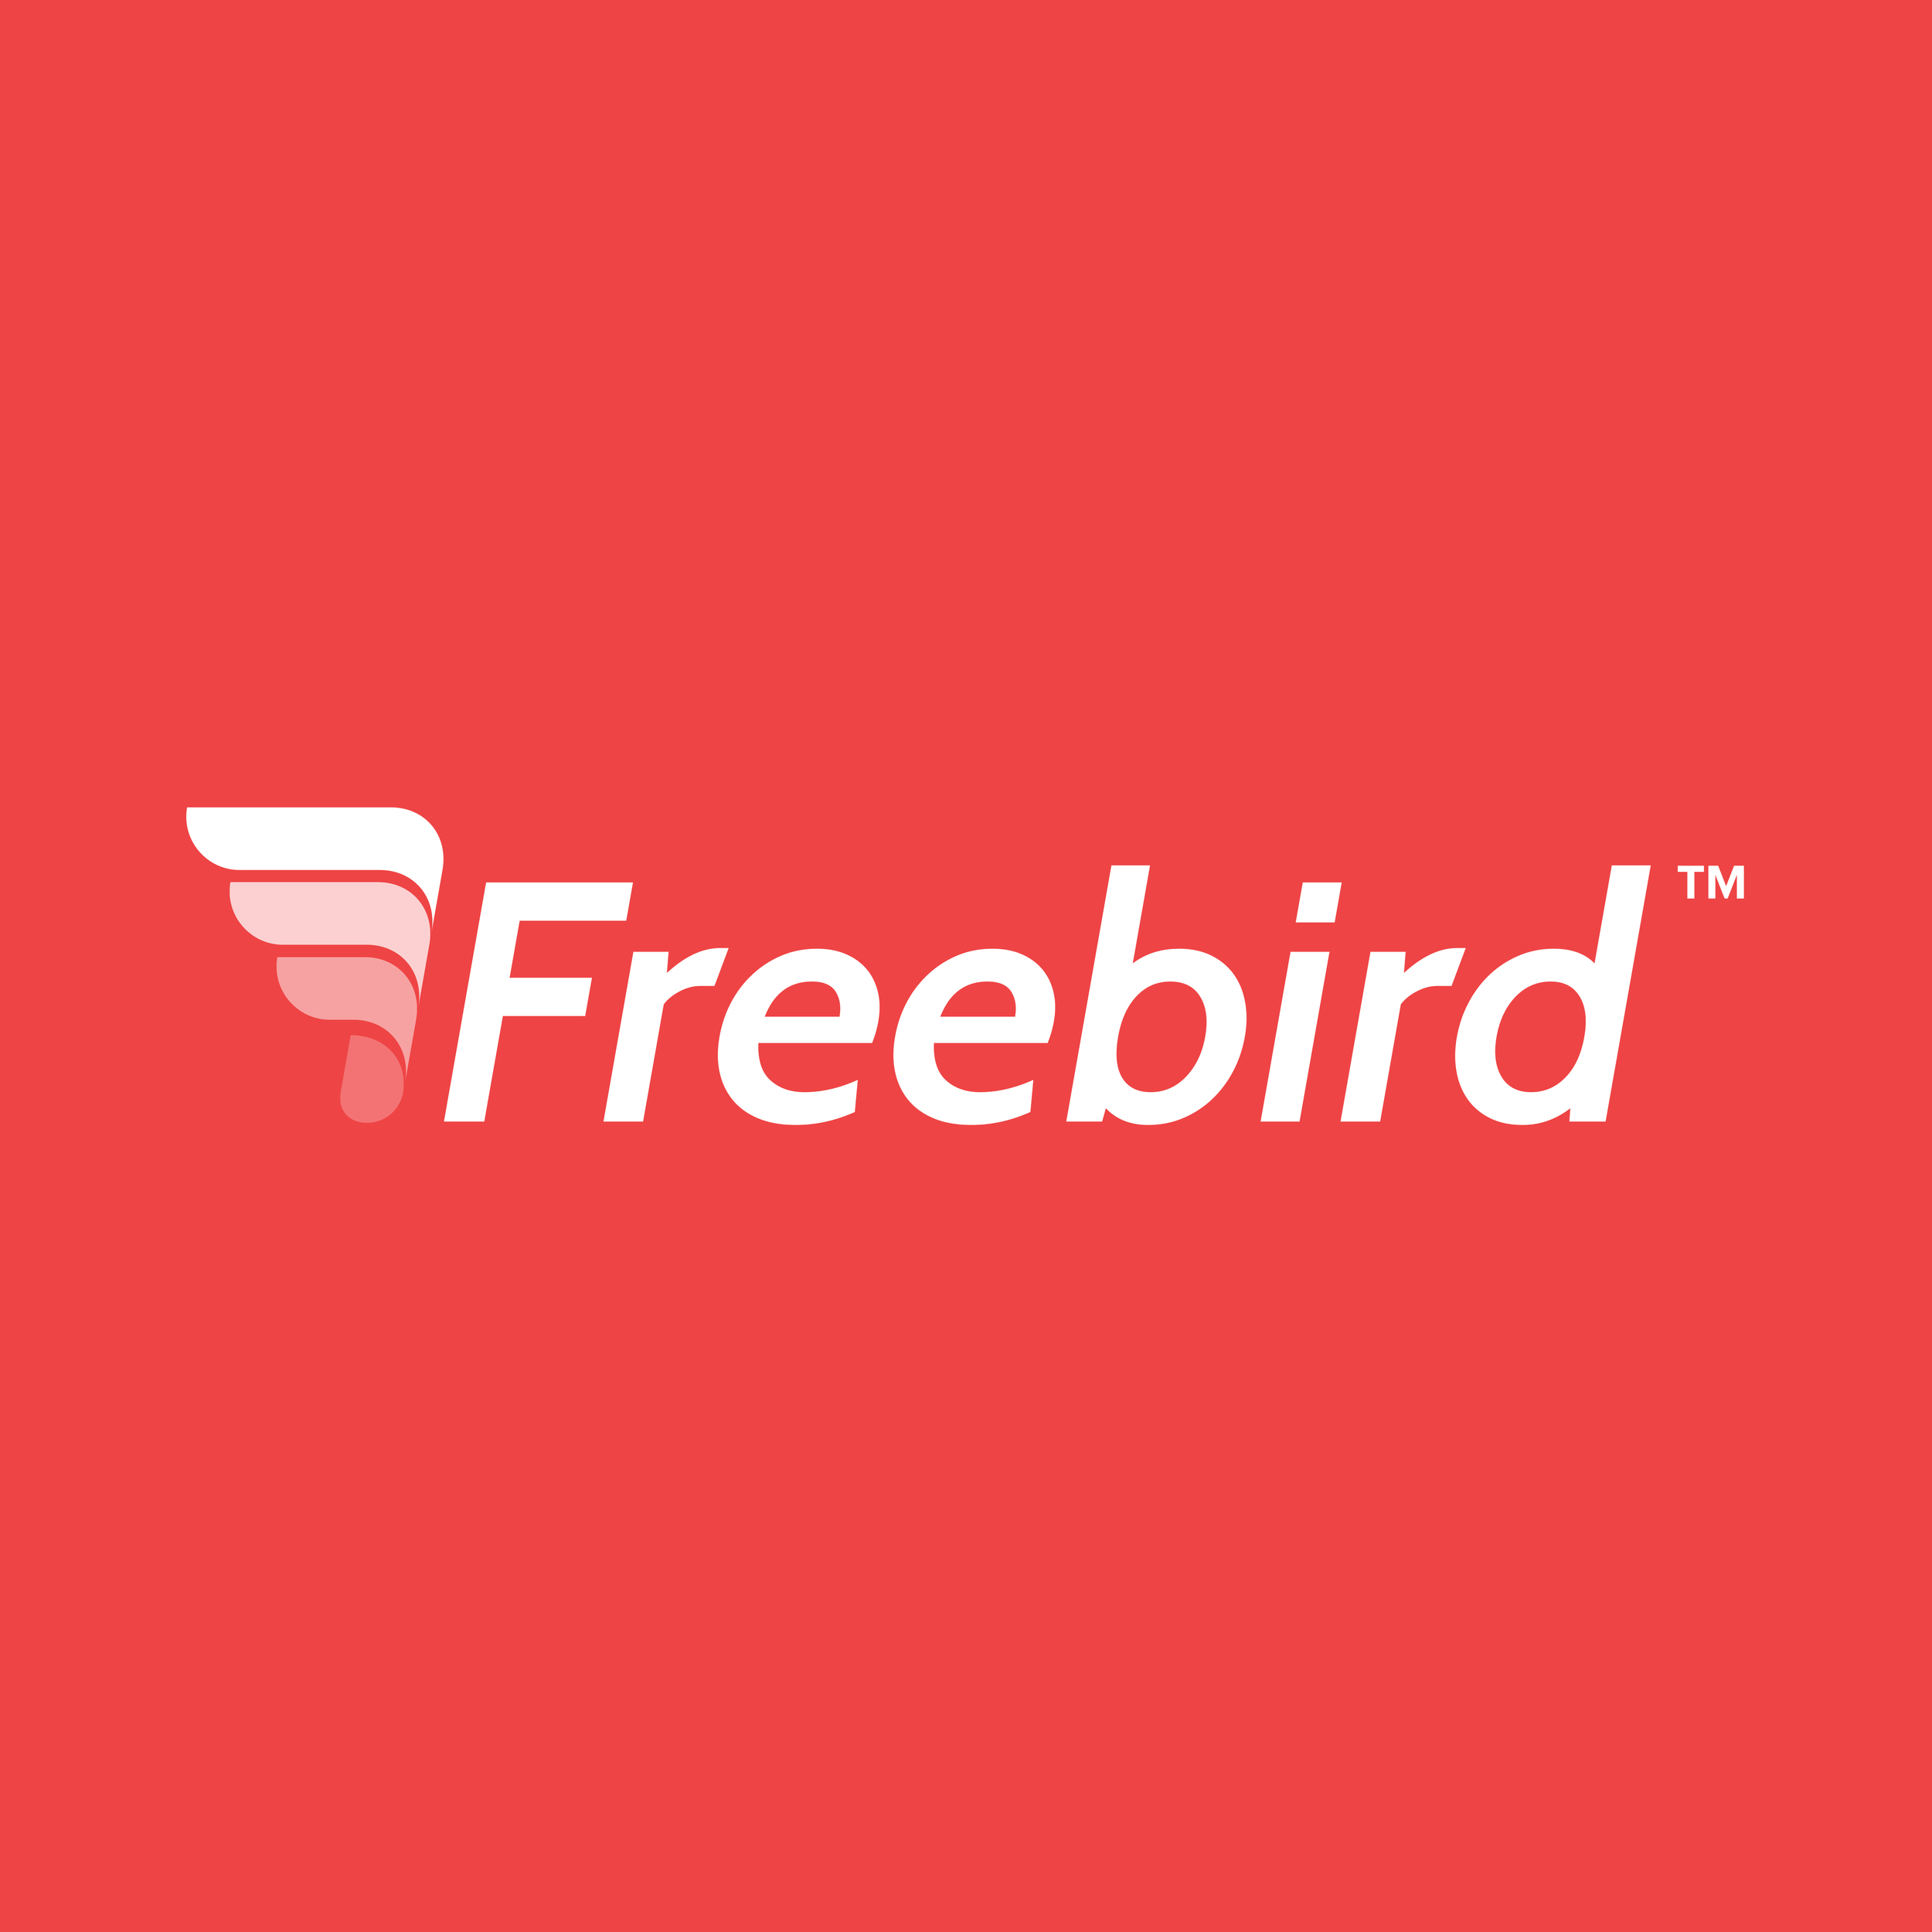 Freebird-full-logo-2MB.jpg